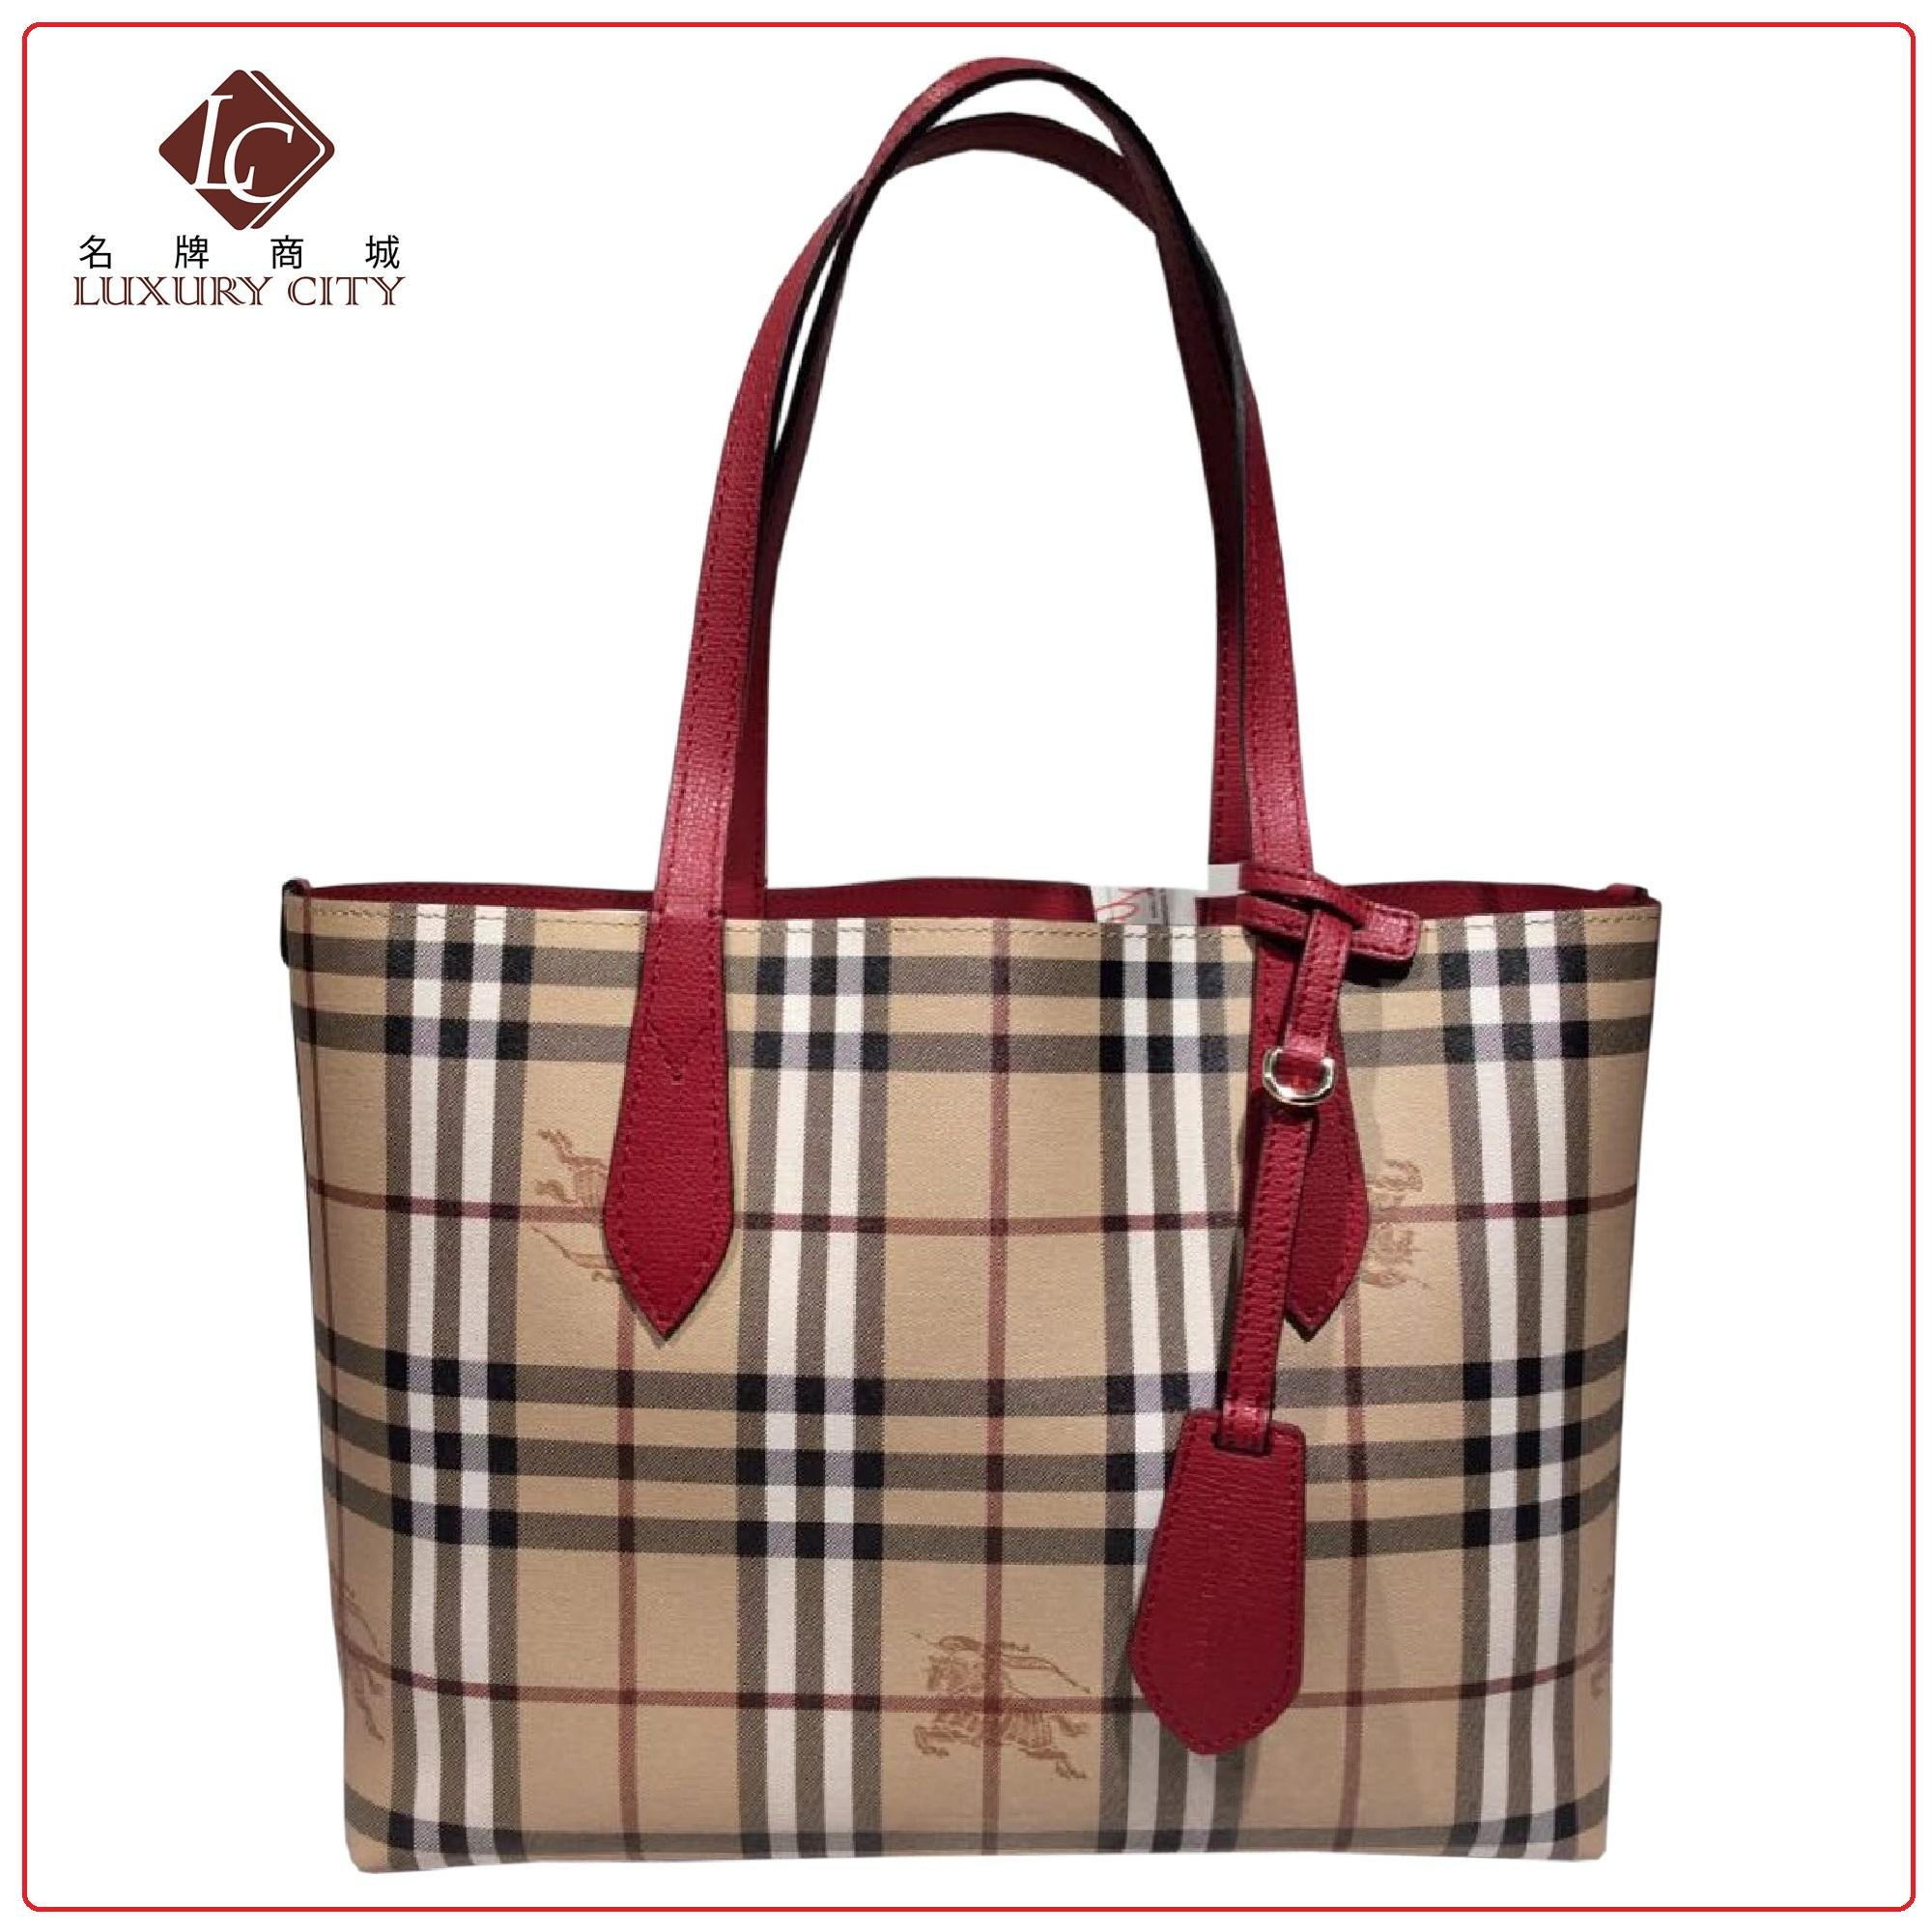 9951a00a8323 PRELOVED AUTHENTIC BURBERRY REVERSIBLE TOTE BAG